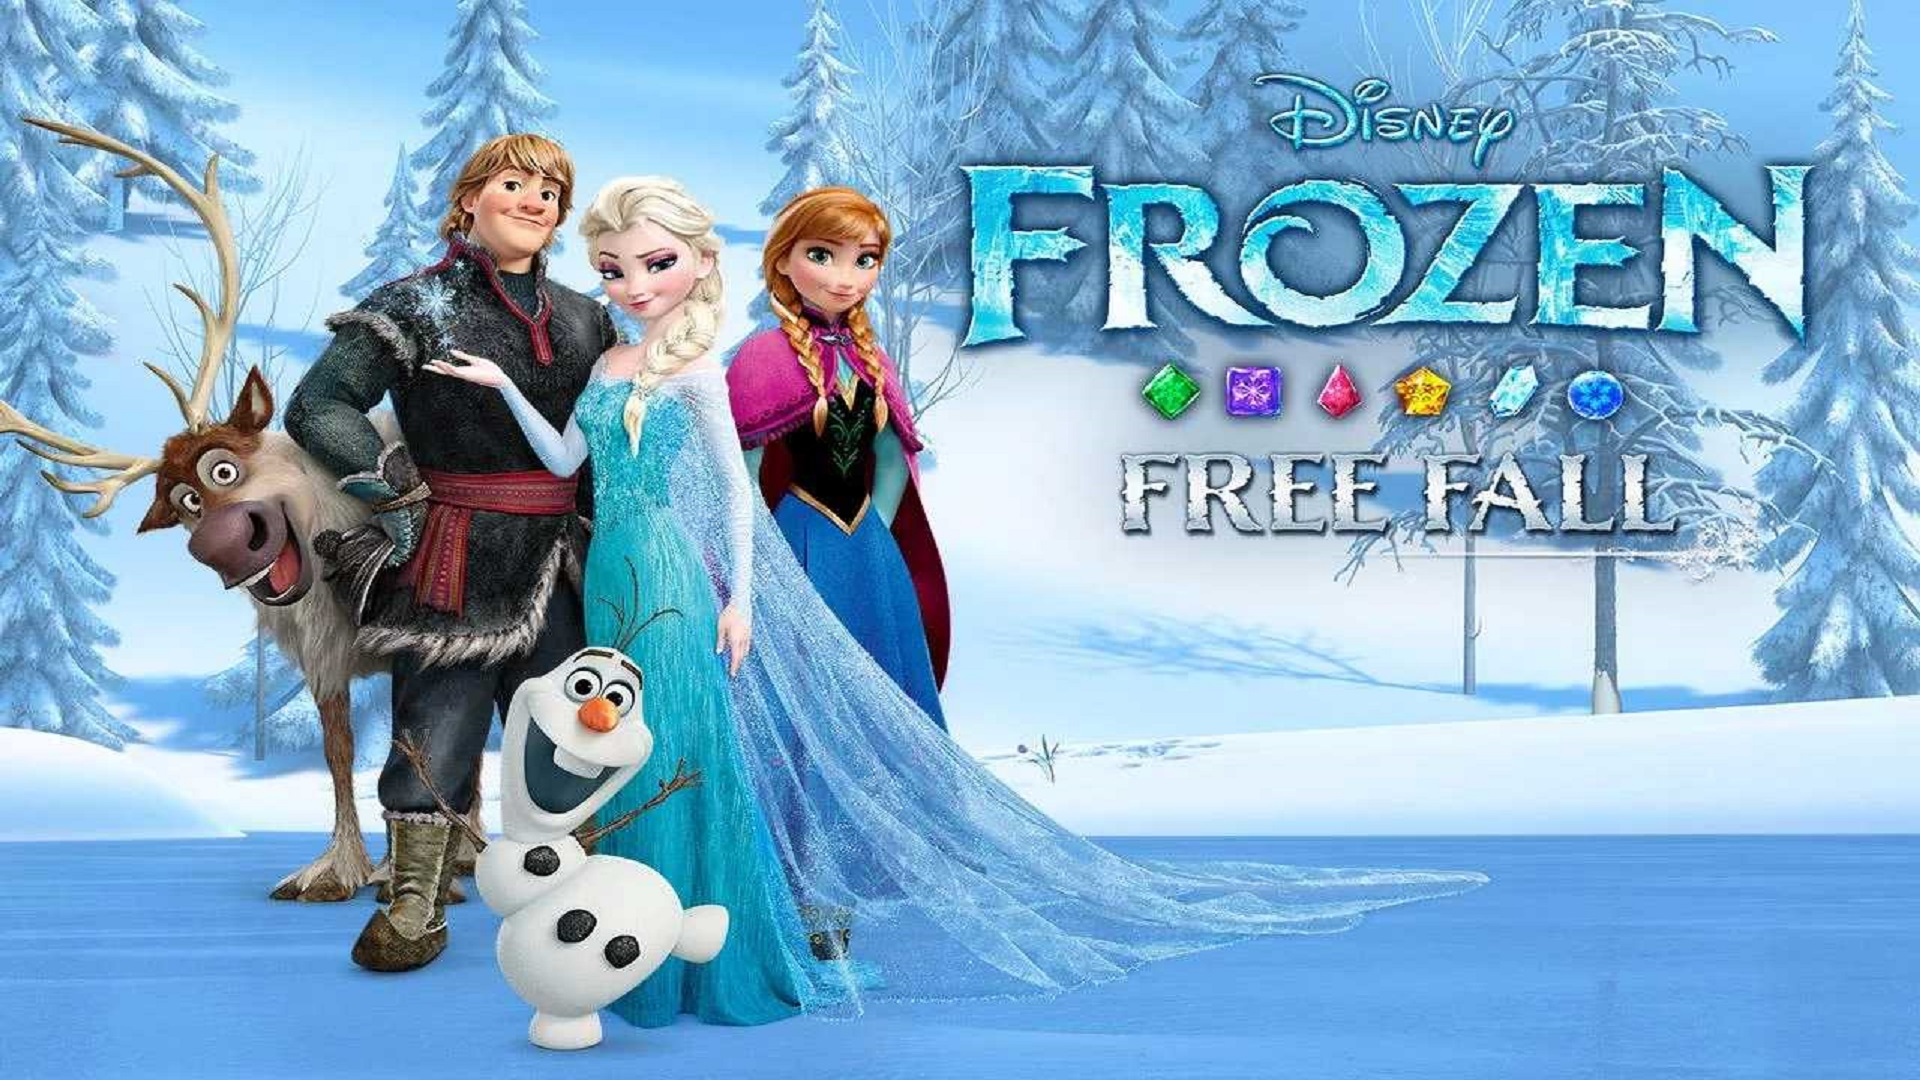 Free Fall Wallpaper Apps Frozen Free Fall Games Hd Free Wallpapers